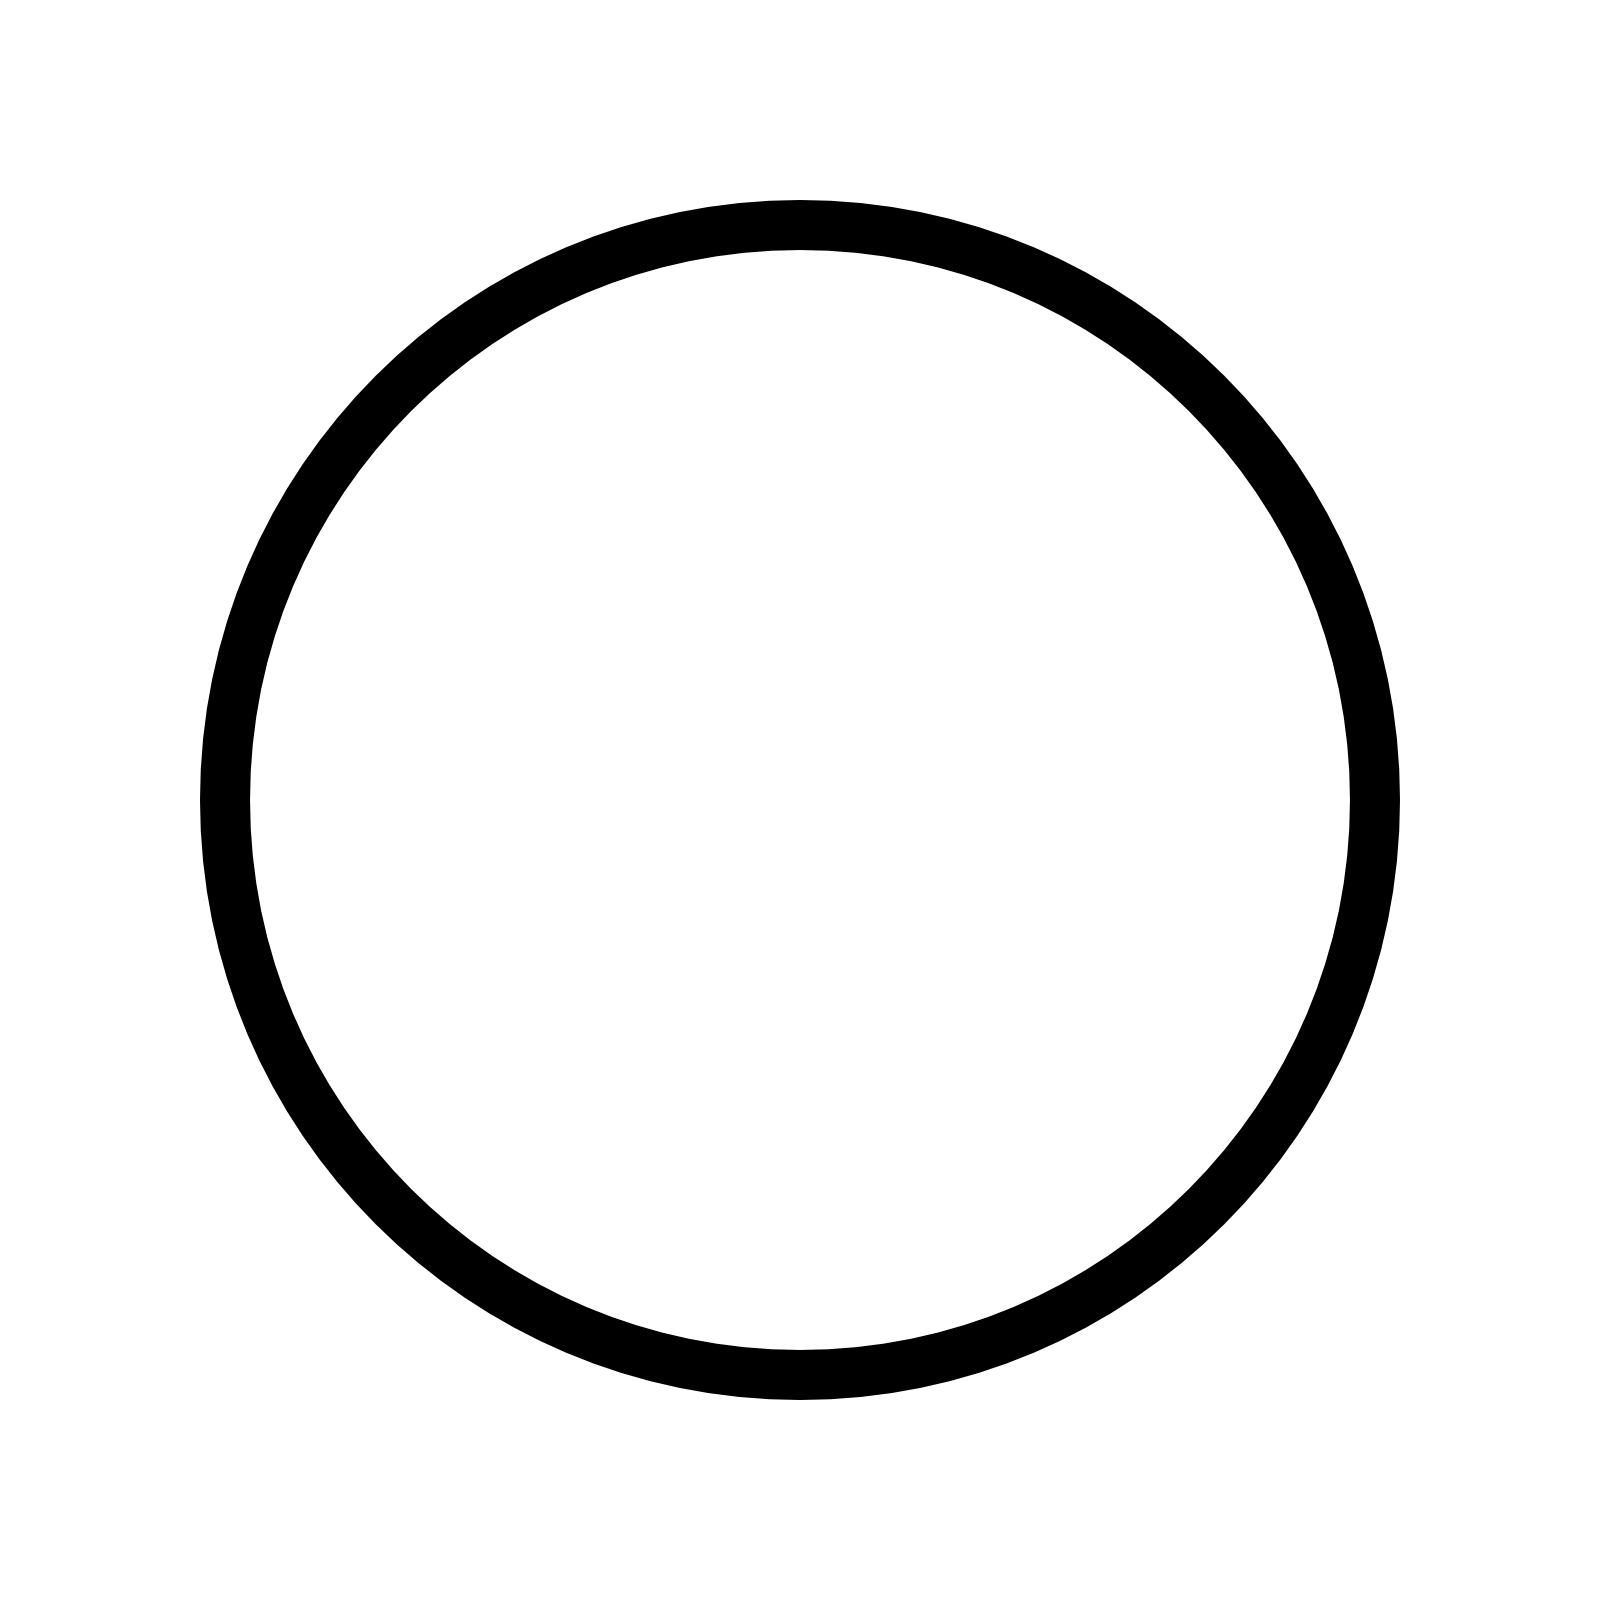 Circled Thin Icon